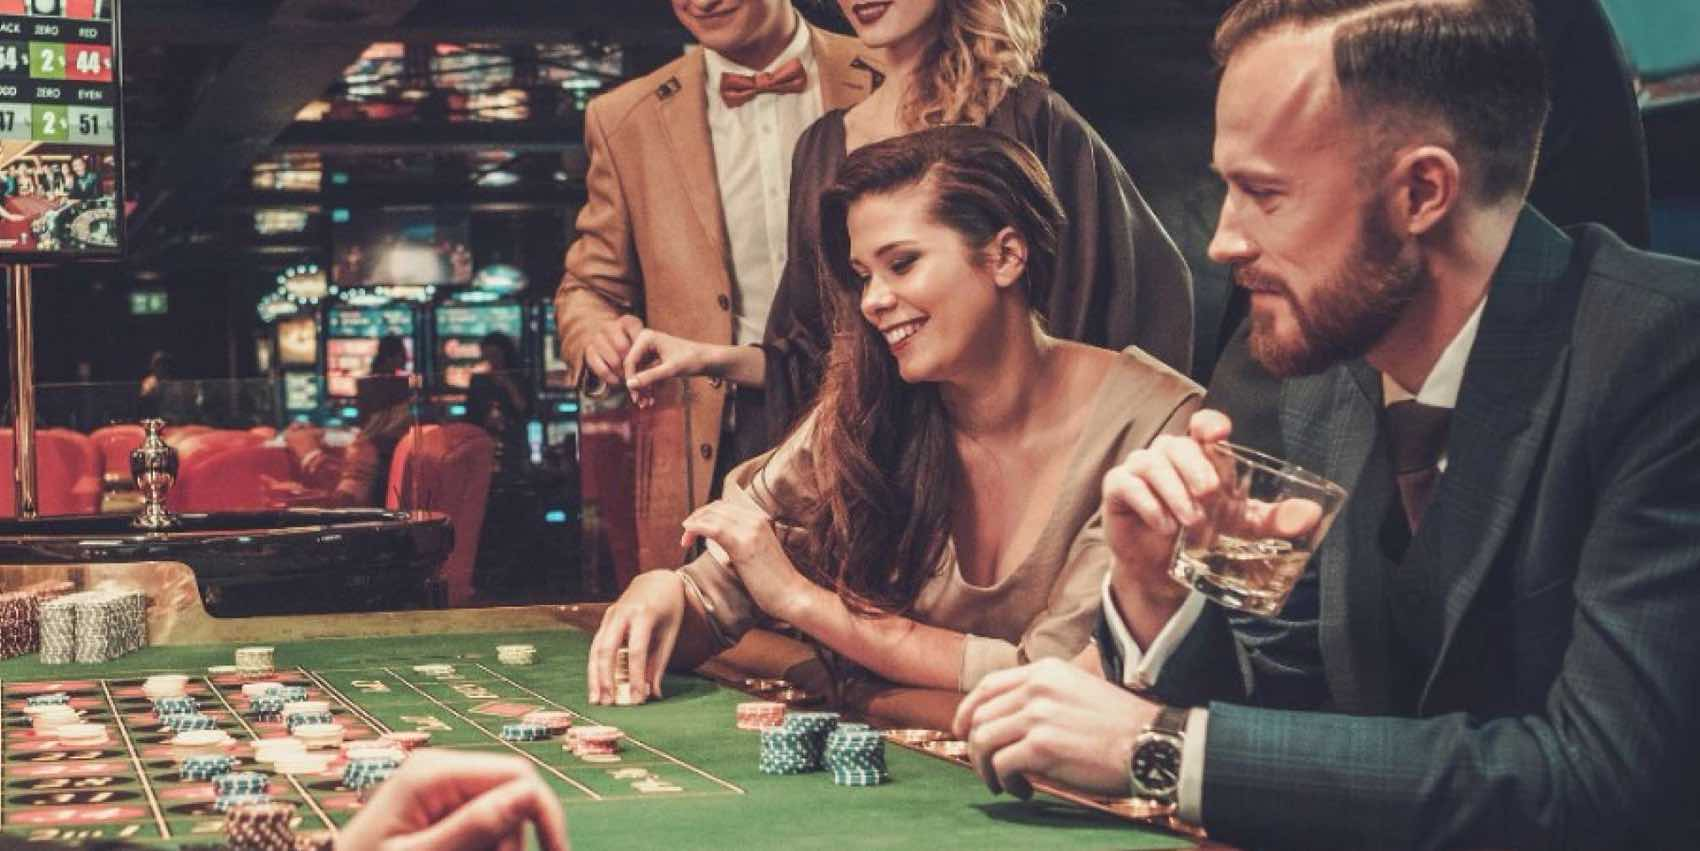 Gambling City: Casino and roulette at Luxor Hotel. And more than 160 casinos